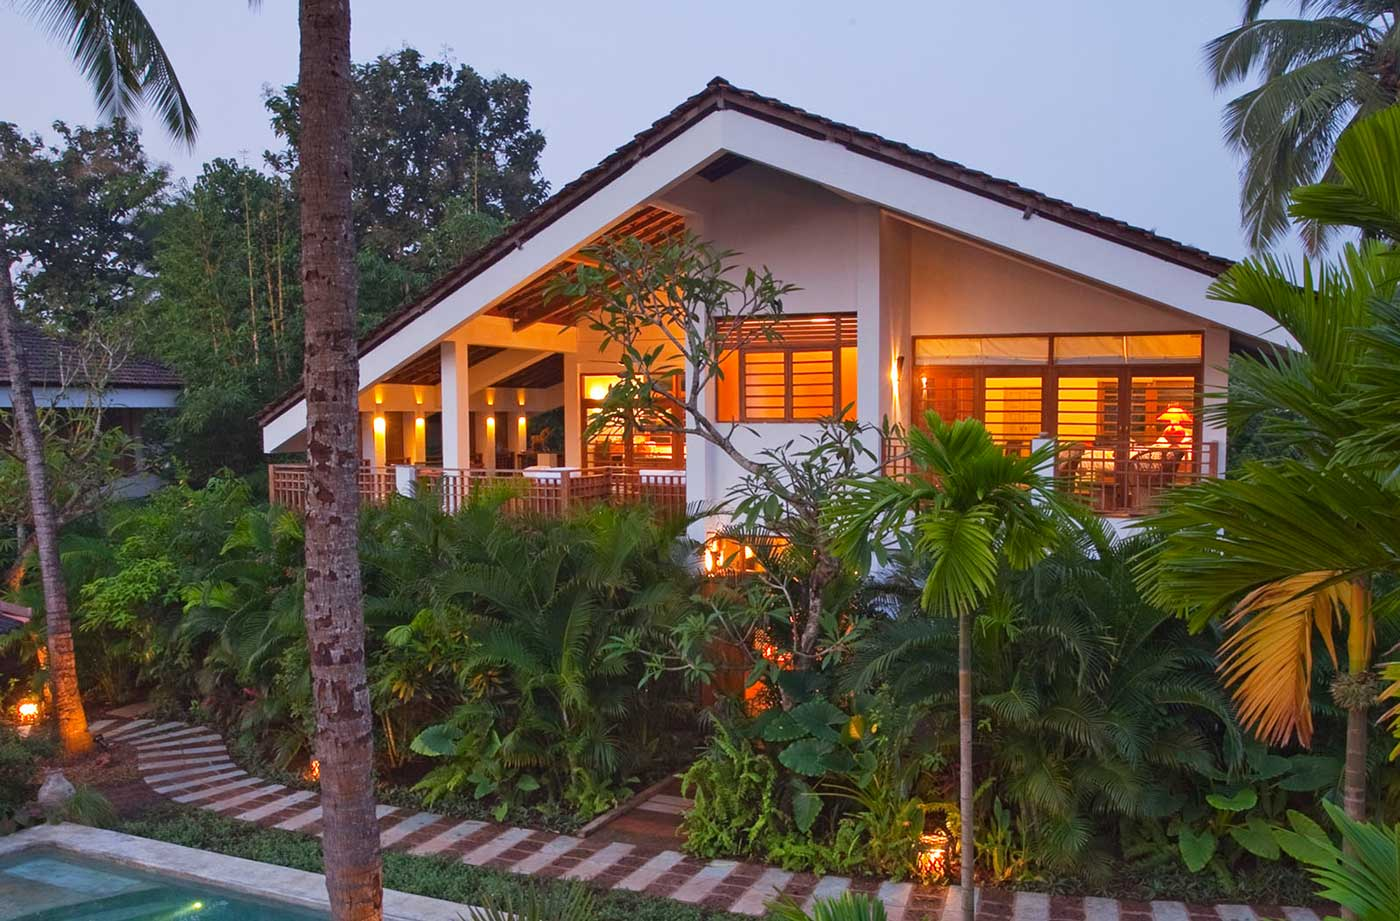 Luxury Villa - Bharnini, beautifully sitting in the Coco Shambhala gardens combines simplicity and luxury.